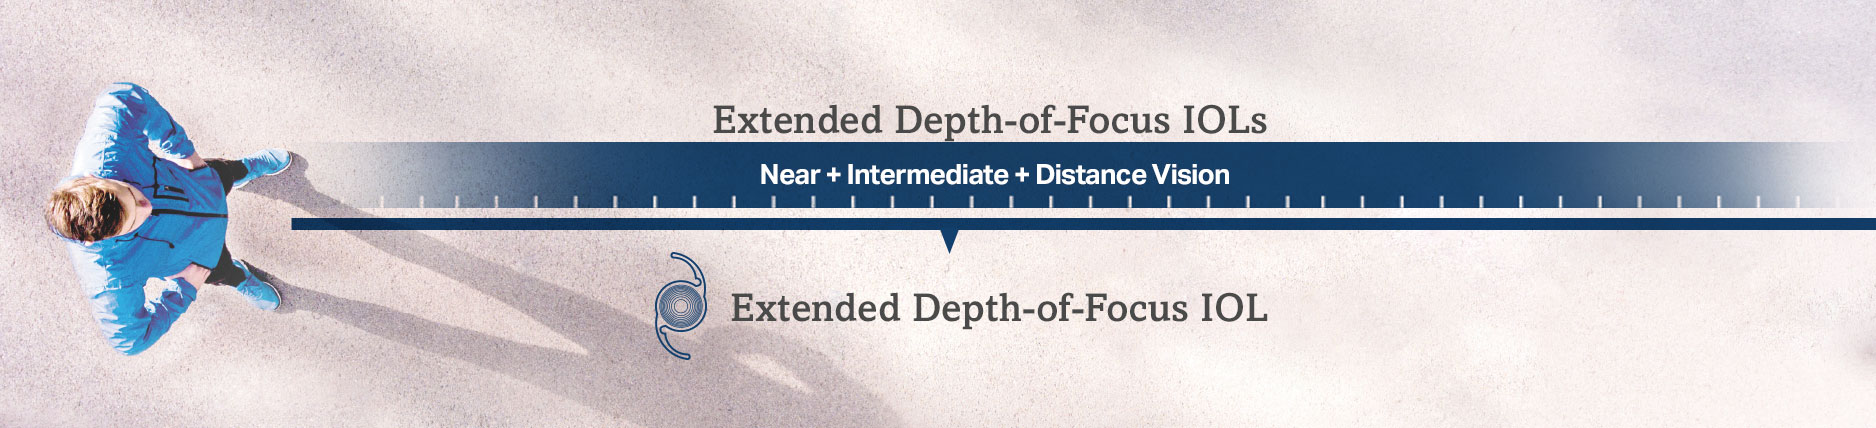 Man showing extended range of vision for near, intermediate, and distance vision with extended range-of-vision IOLs